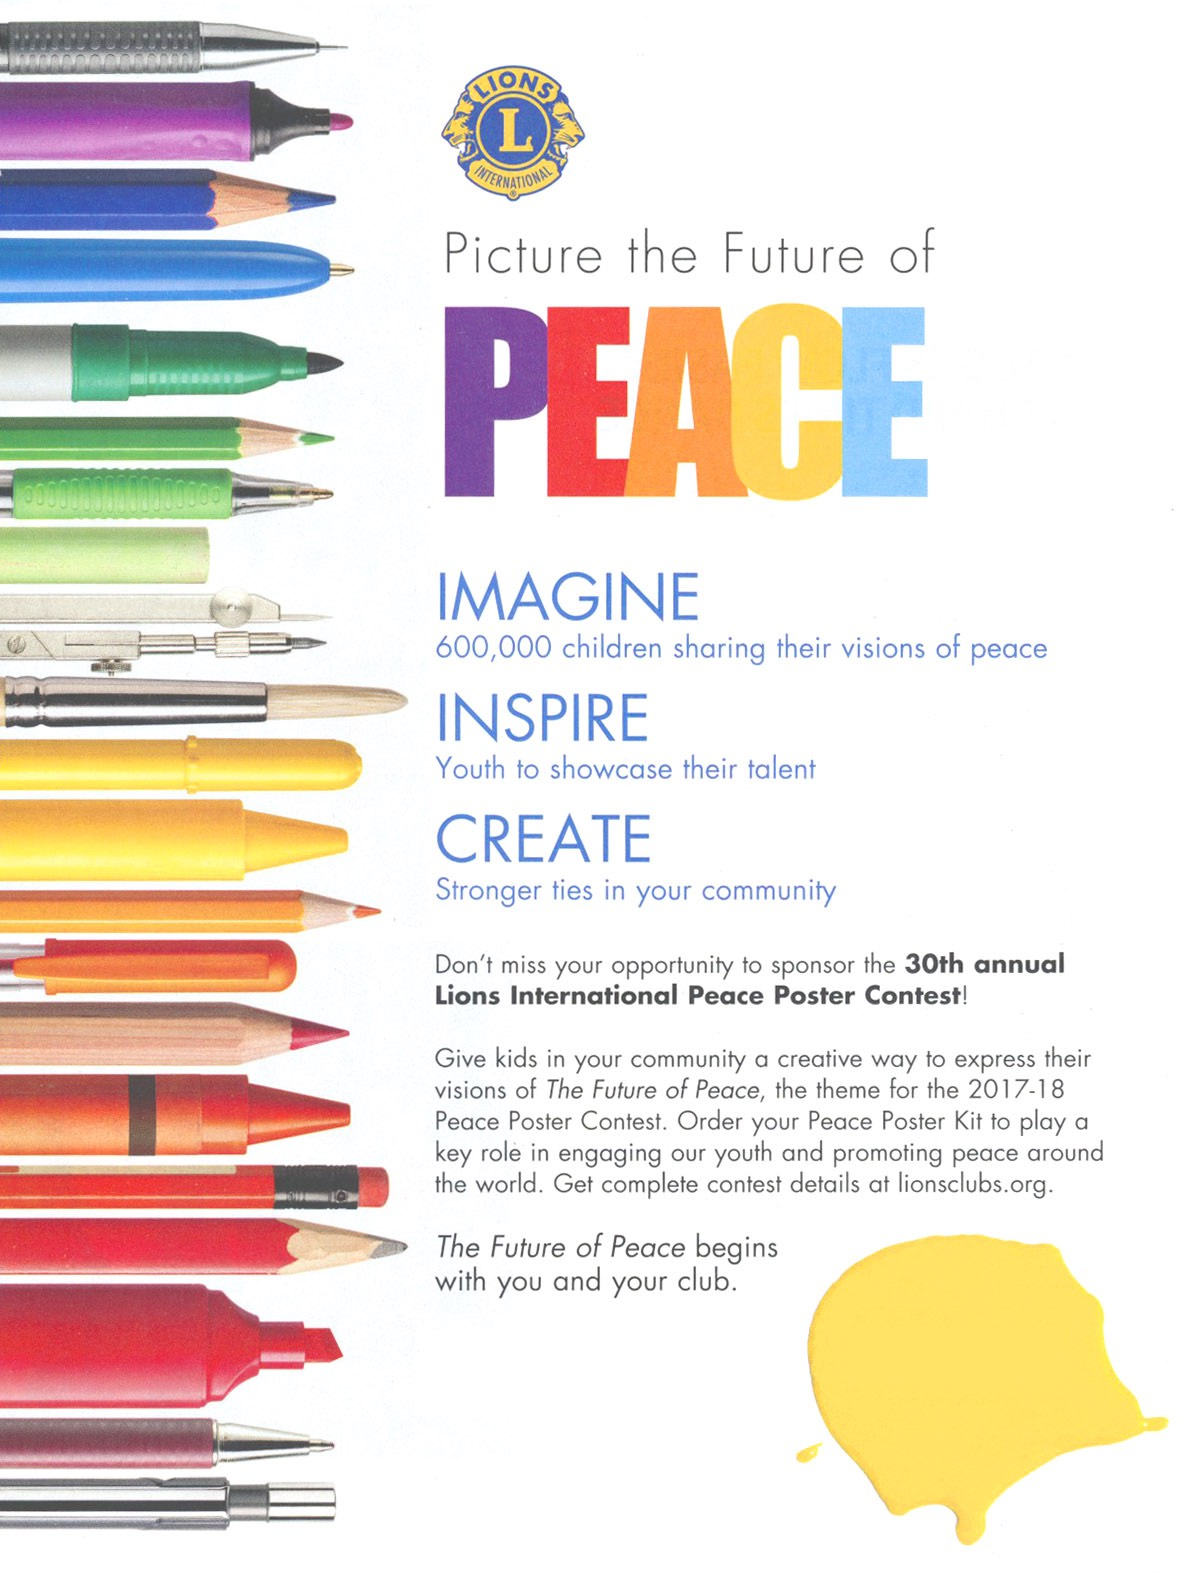 Announcing the 2017-18 Peace Poster Contest